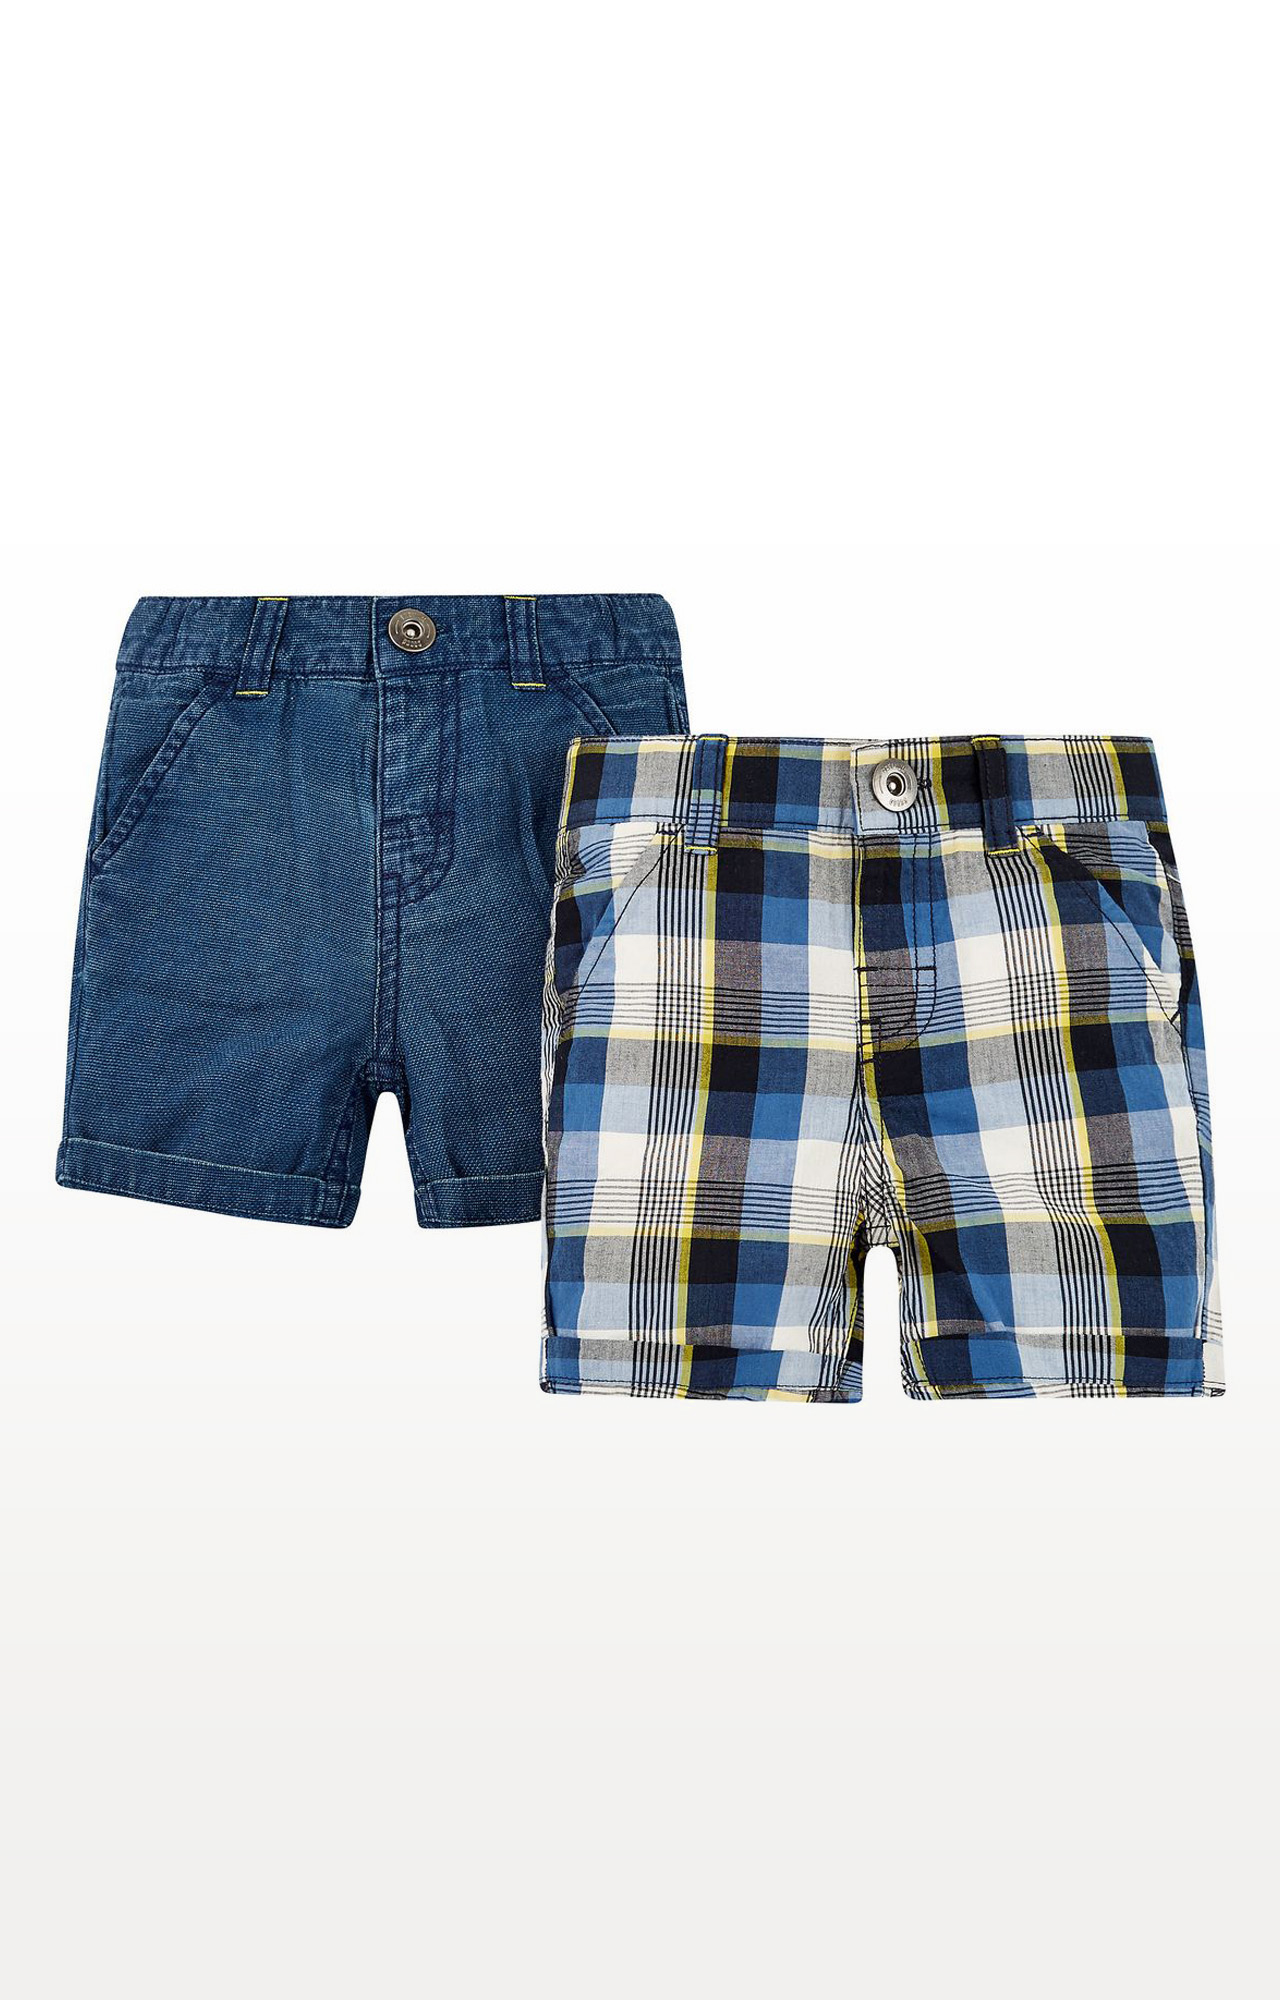 Mothercare | Boys Shorts Denim & Check - Pack Of 2 - Blue - Multicolor